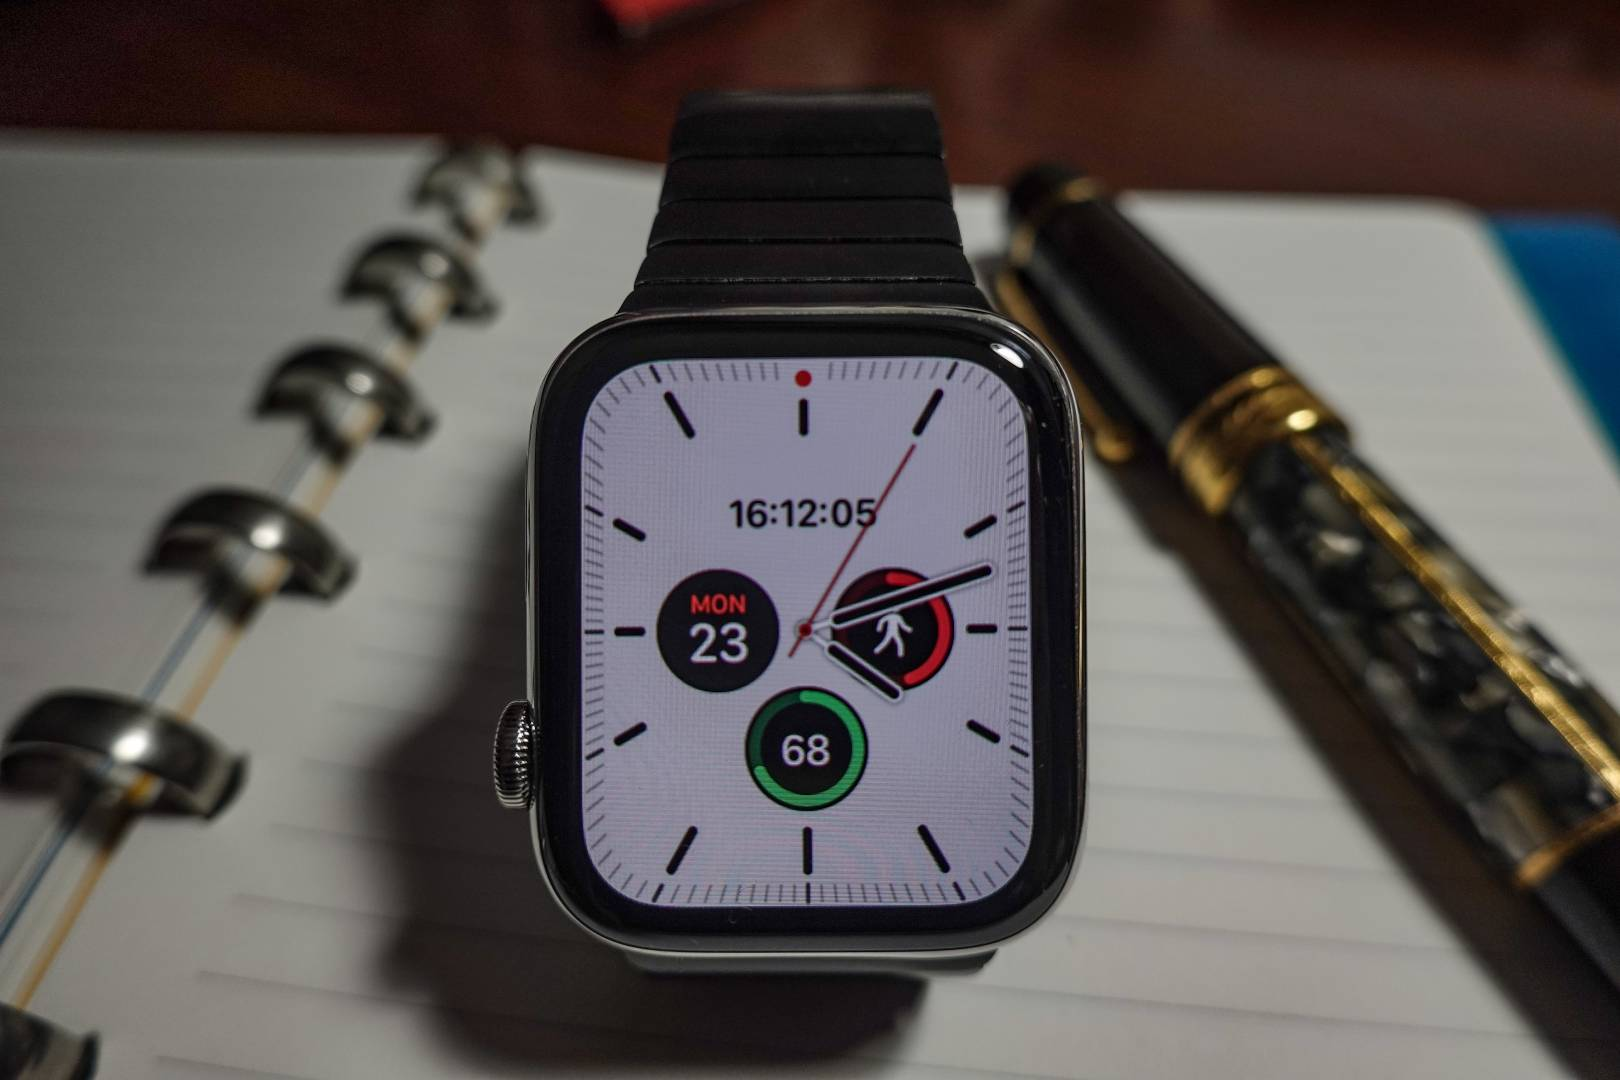 One of the new faces for OS6, Meridian. I like this because the traditional watch dial occupies the full screen with the complications inside. Here we bave digital time, steps, battery level and day/date.